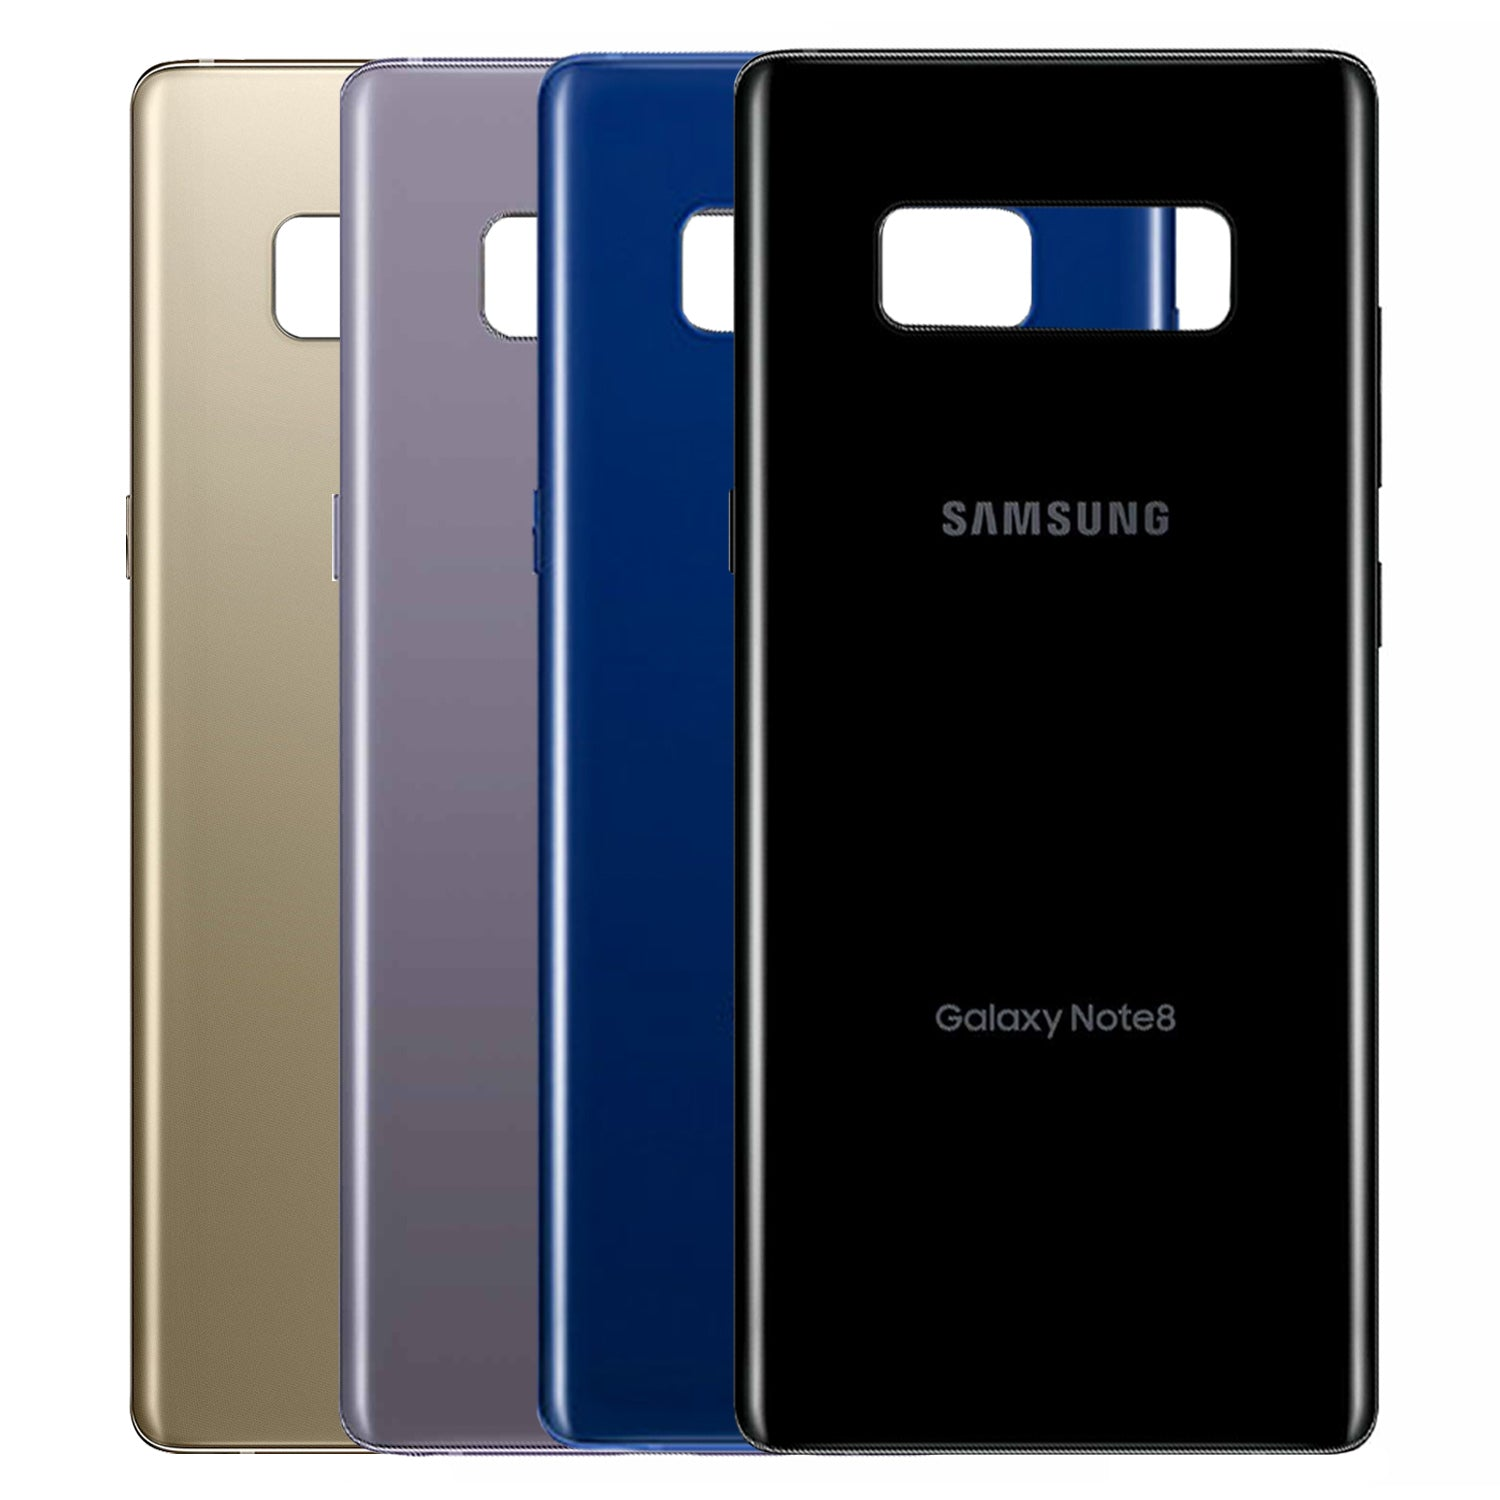 Samsung Galaxy Note 8 Back Glass Panel Battery Door Cover Housing